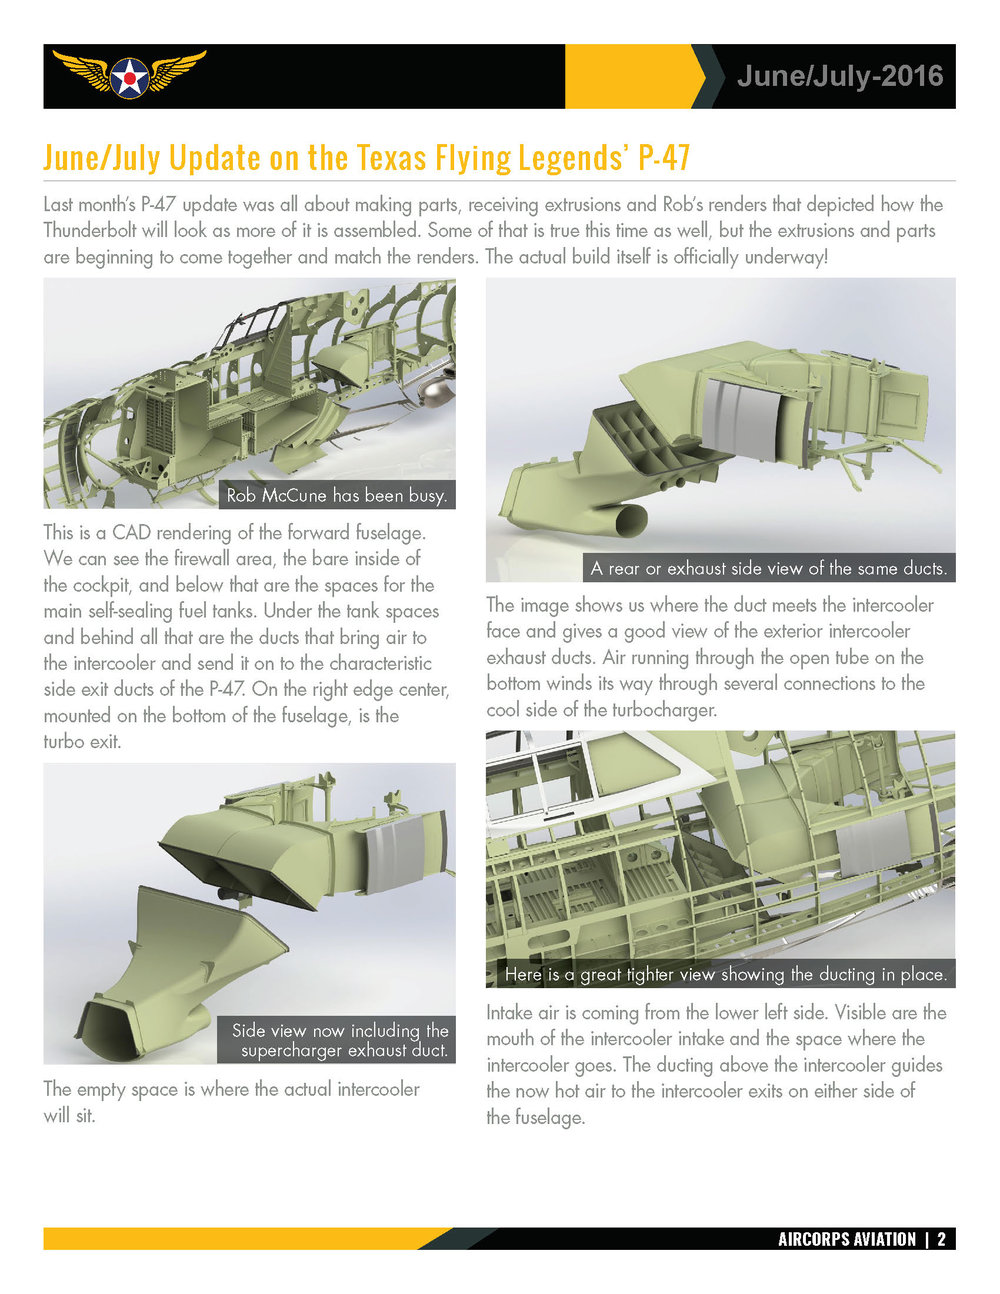 June/July Texas Flying Legends' P-47 Update